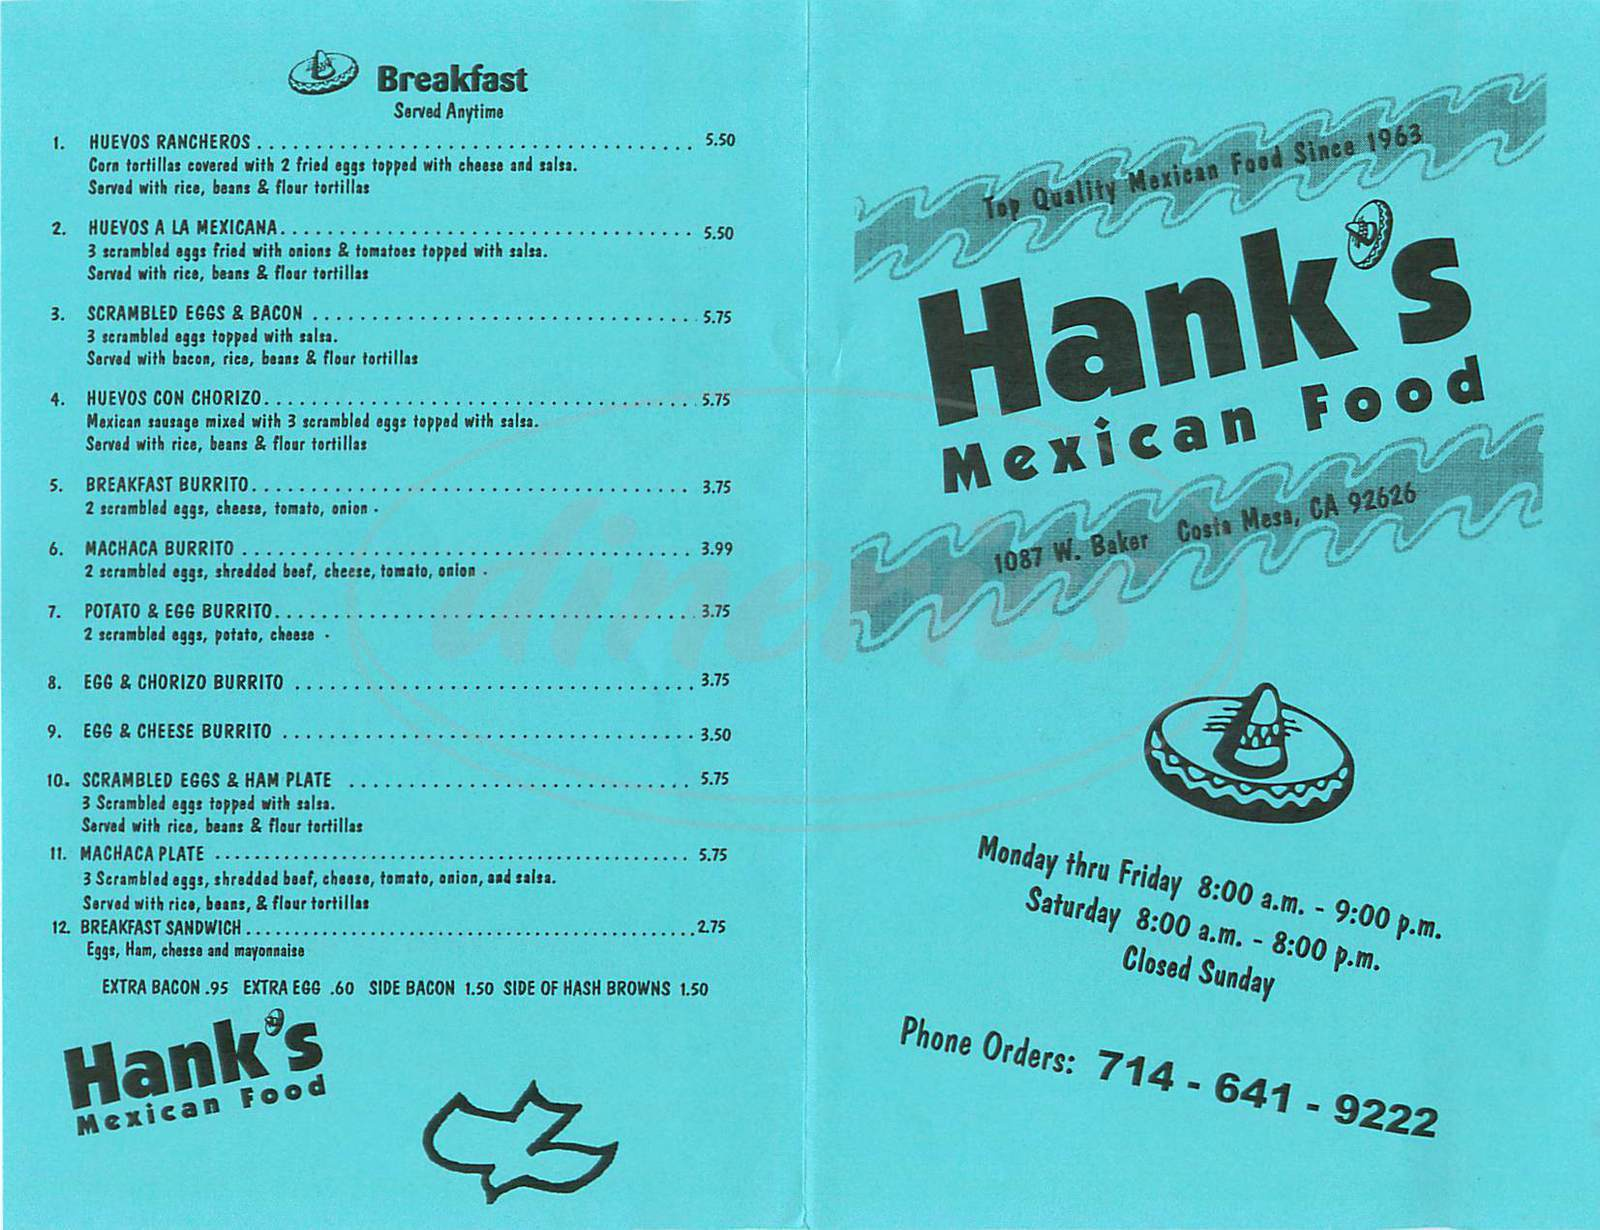 menu for Hanks Mexican Food